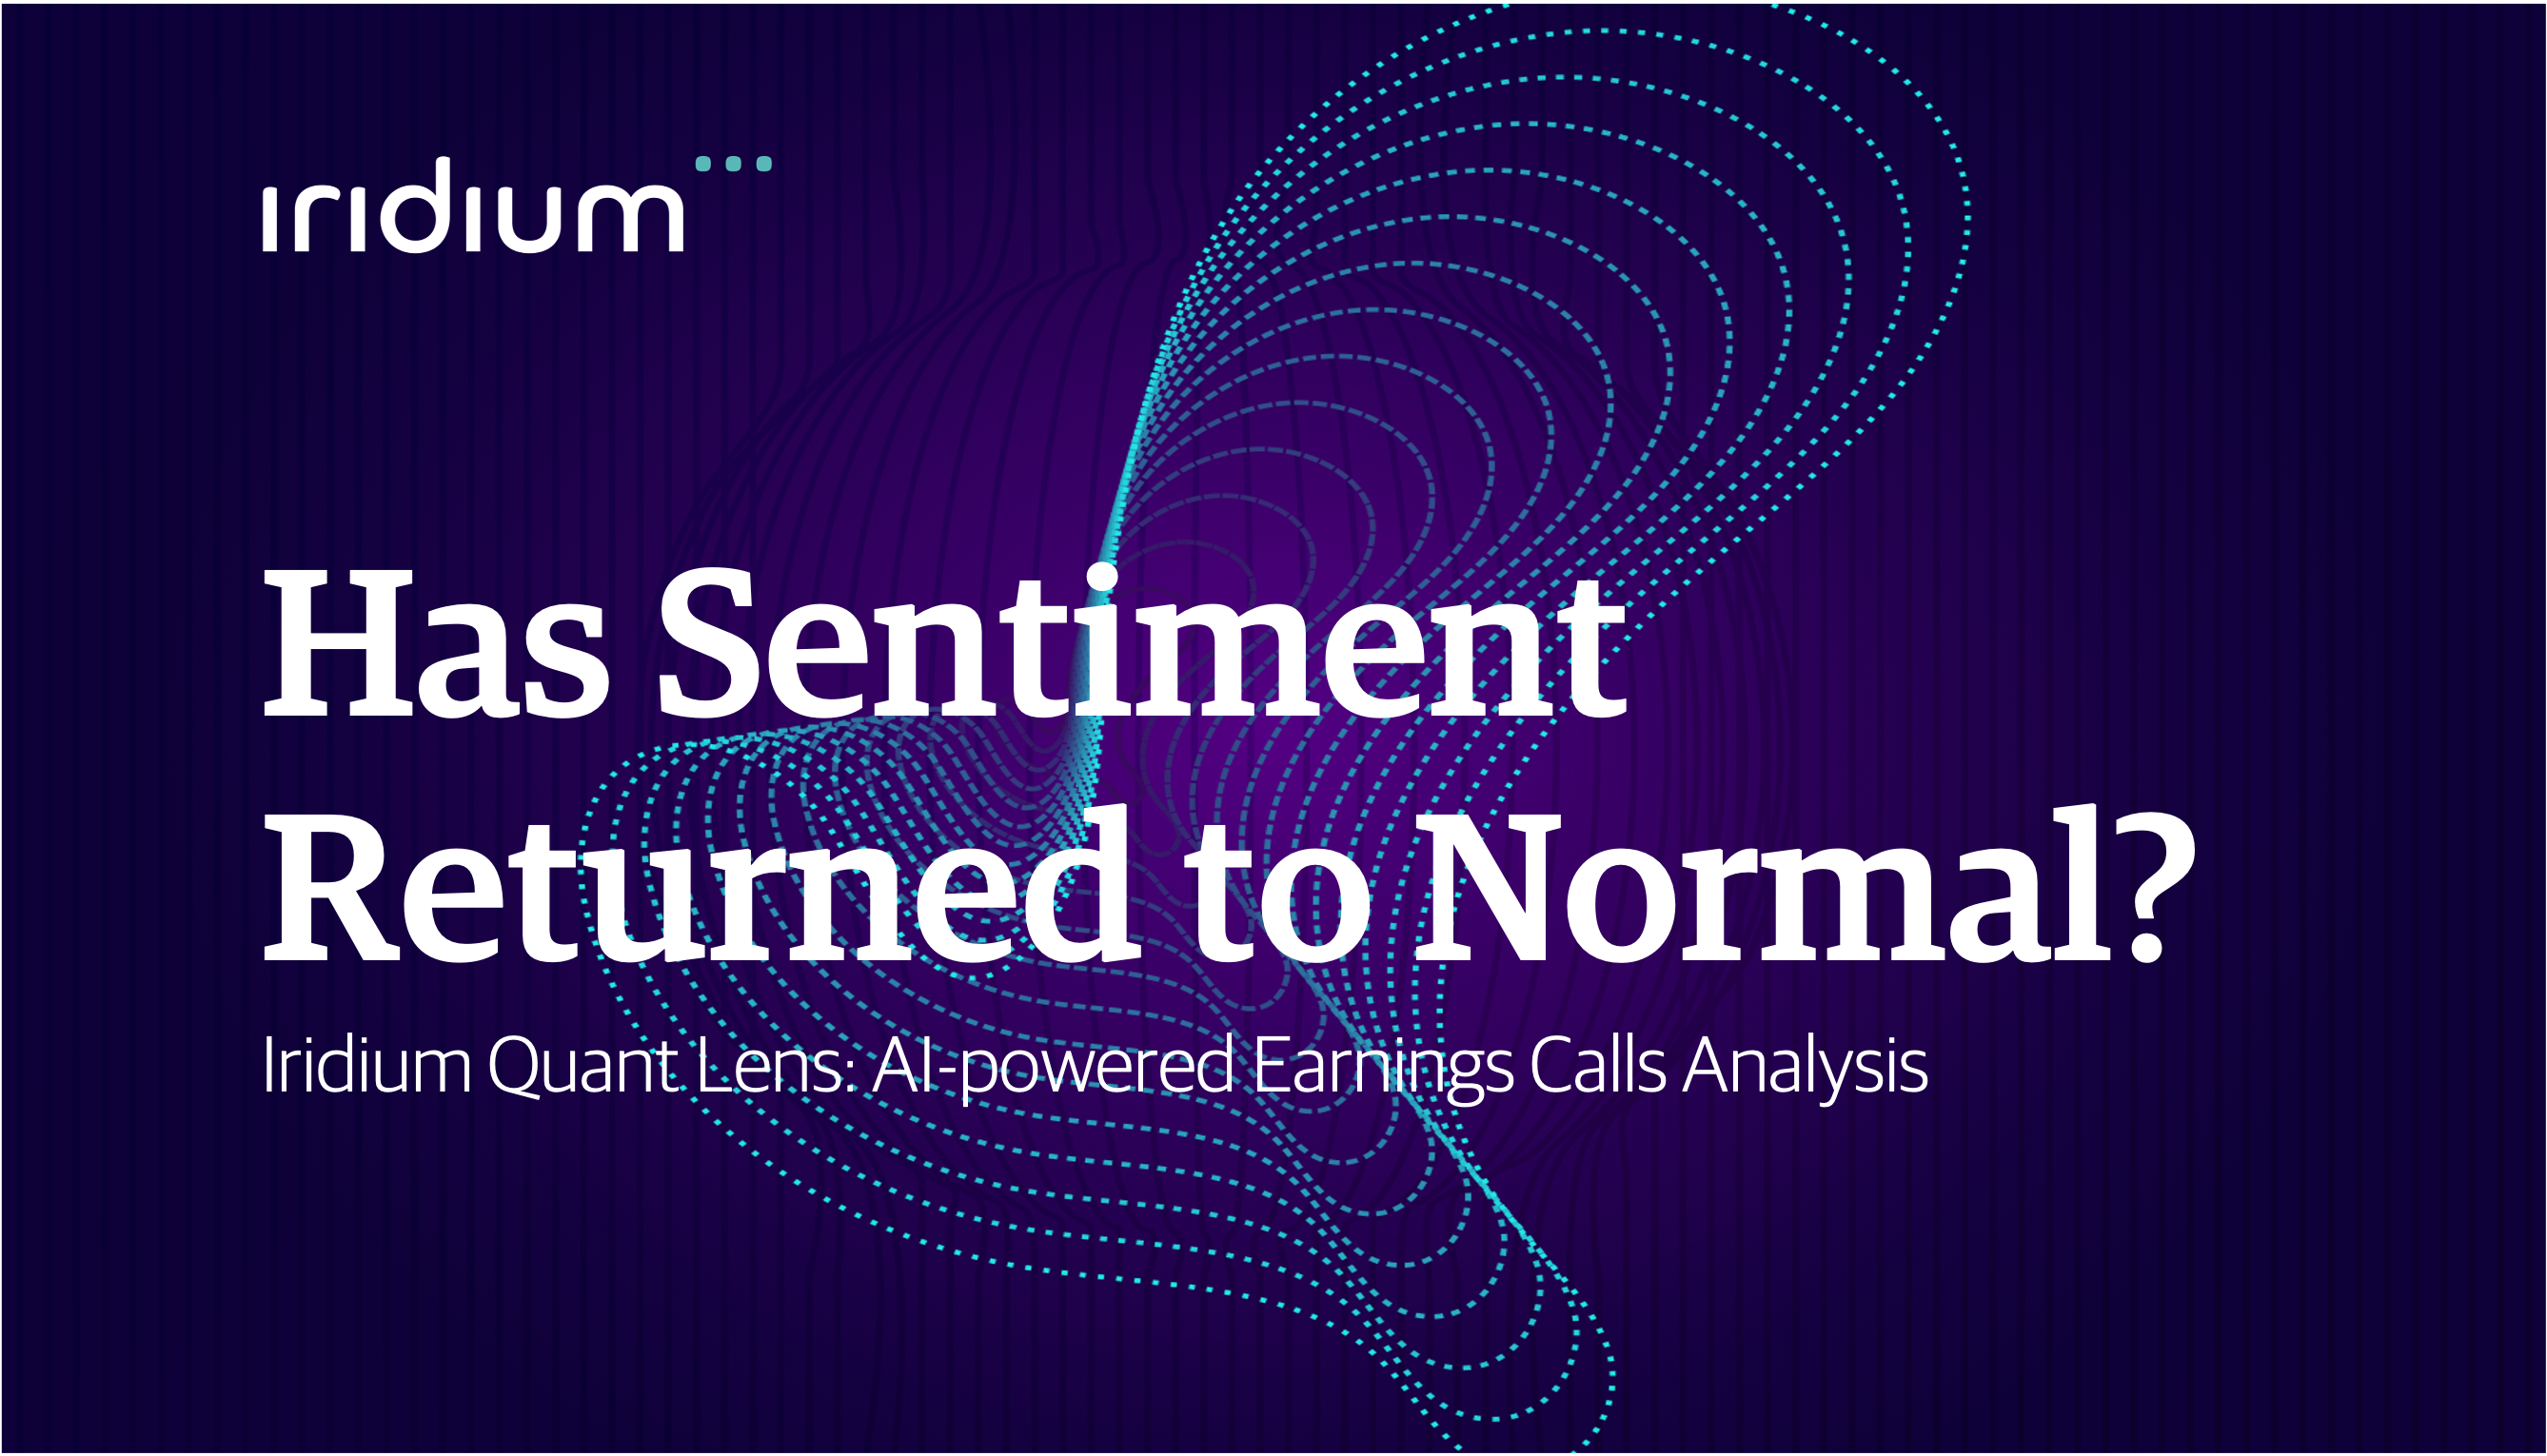 Market Sentiment Indicates Return to Normal as Covid Fears Subside